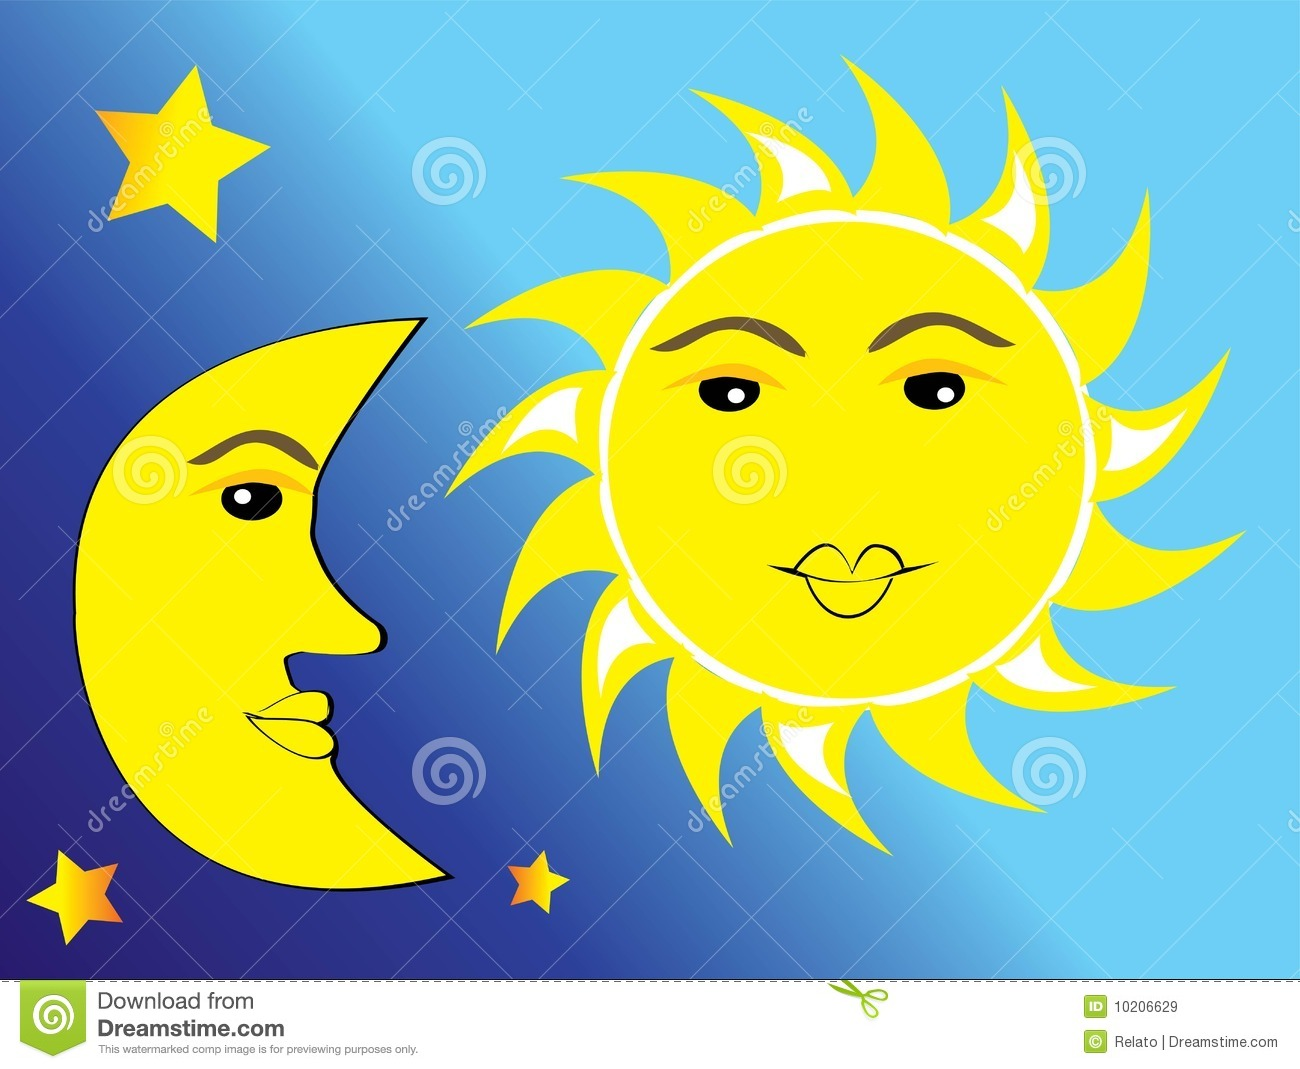 Worksheets Sun Moon And Stars sun moon and stars royalty free stock images image 10206629 stars